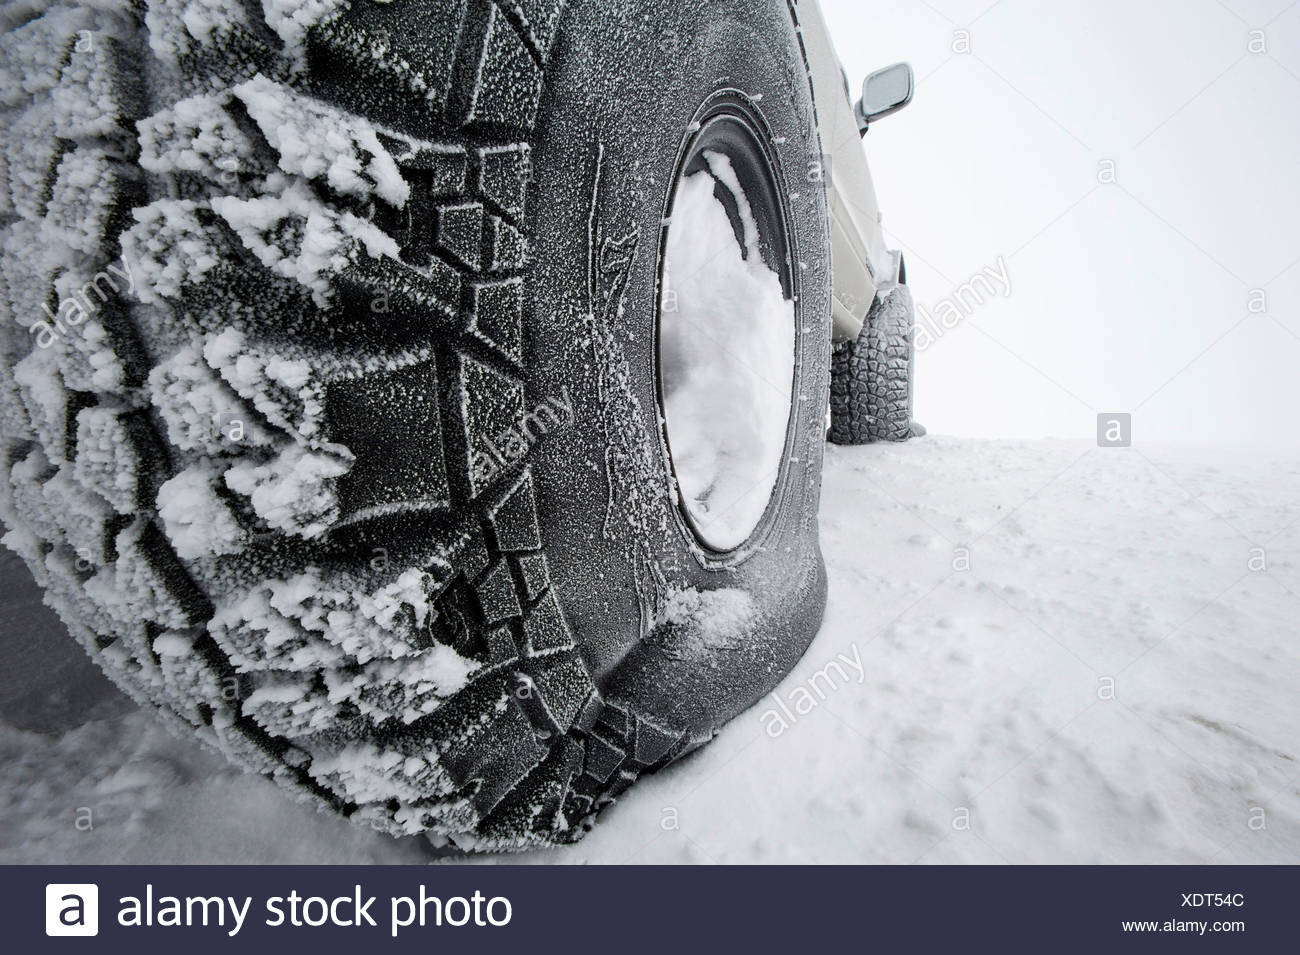 Super Jeep tyres with low air pressure for better grip on snow, Iceland, Europe - Stock Image